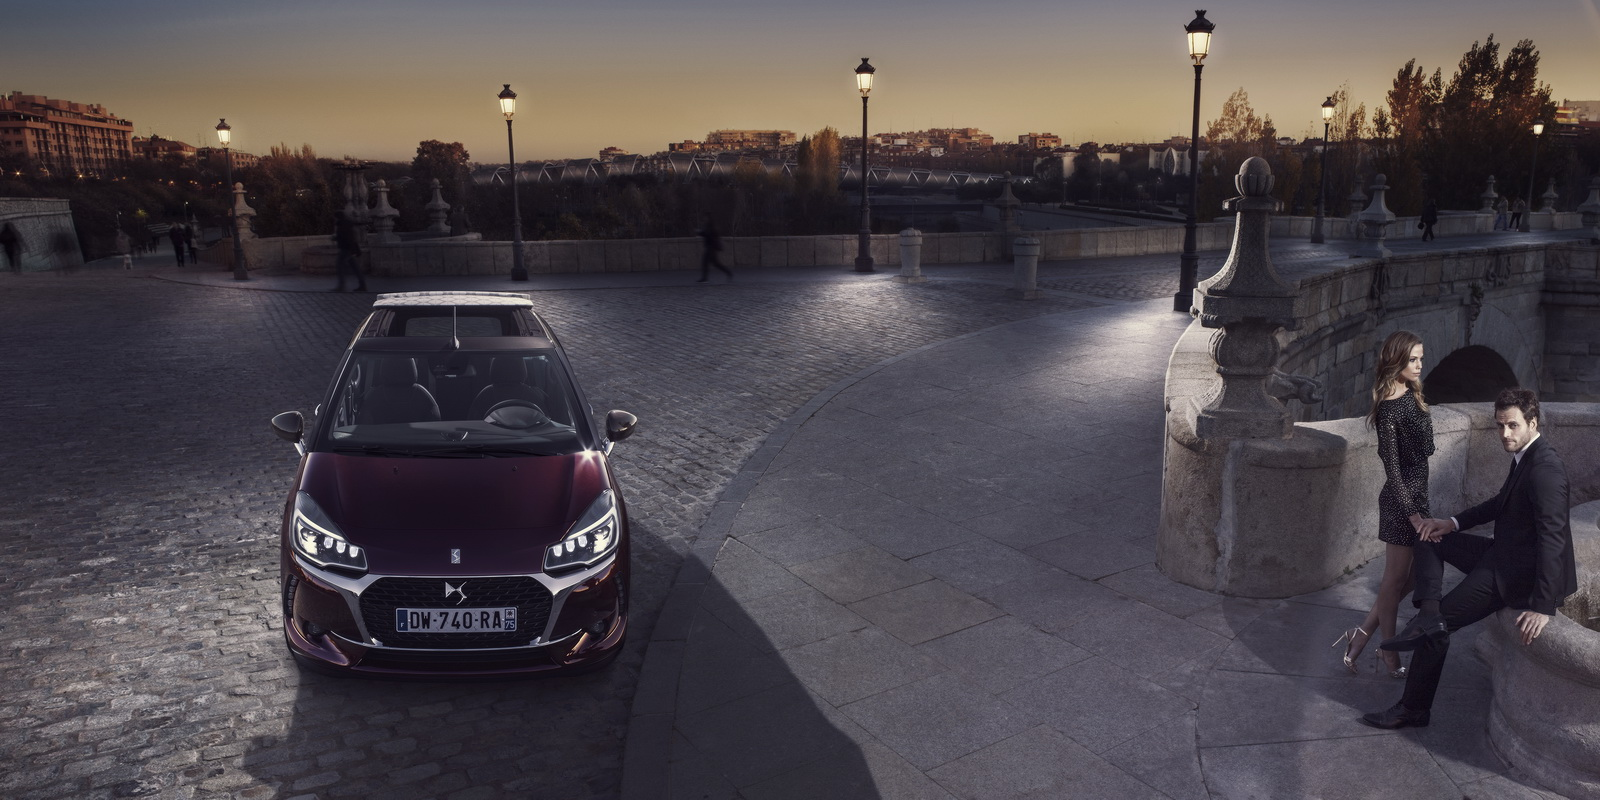 DS Automobiles - 2016 - Nouvelle DS 3 Cabrio - photo - belle soirée / good evening